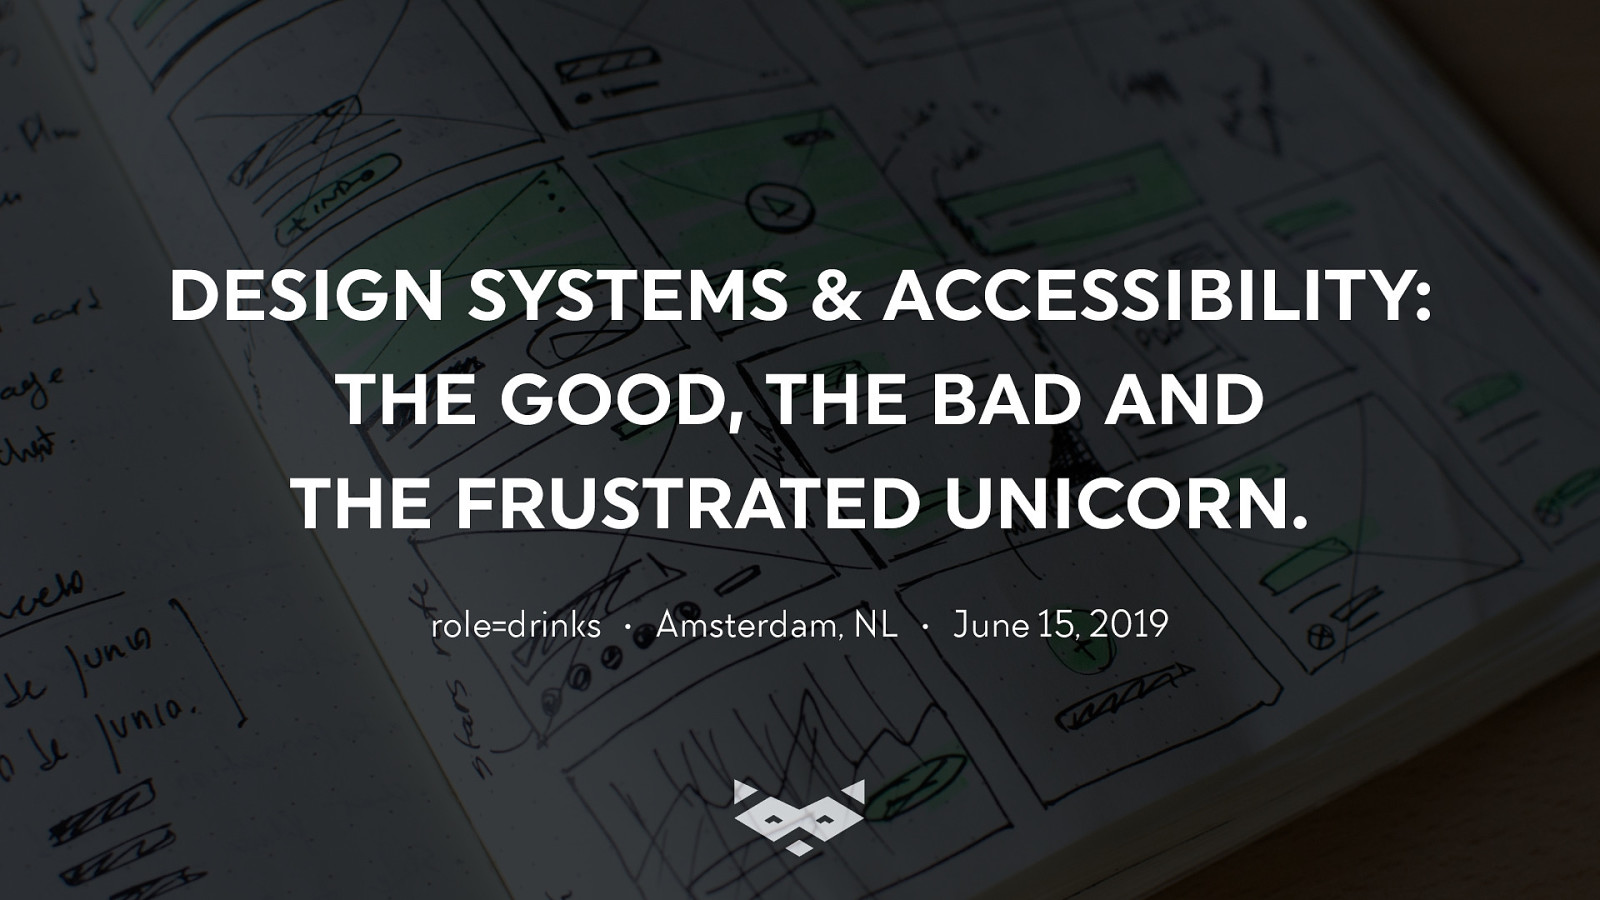 Design systems & Accessibility: the Good, the Bad and the Frustrated Unicorn